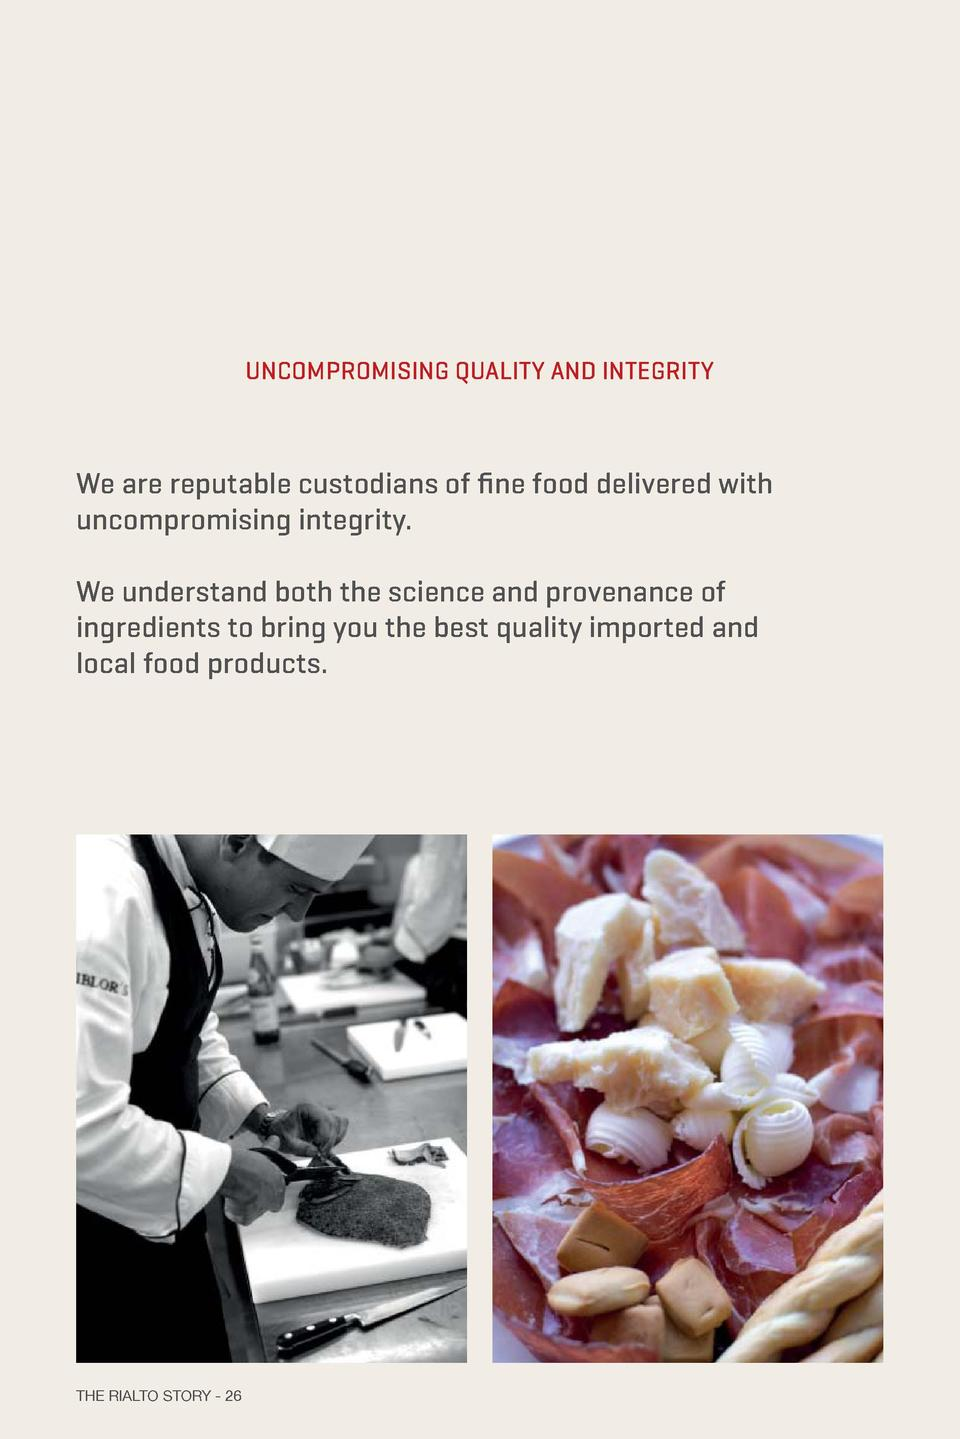 OUR VALUES  UNCOMPROMISING QUALITY AND INTEGRITY  DRIVEN BY INNOVATION AND NEW PRODUCT AND TASTE EXPERIENCES  We are reput...